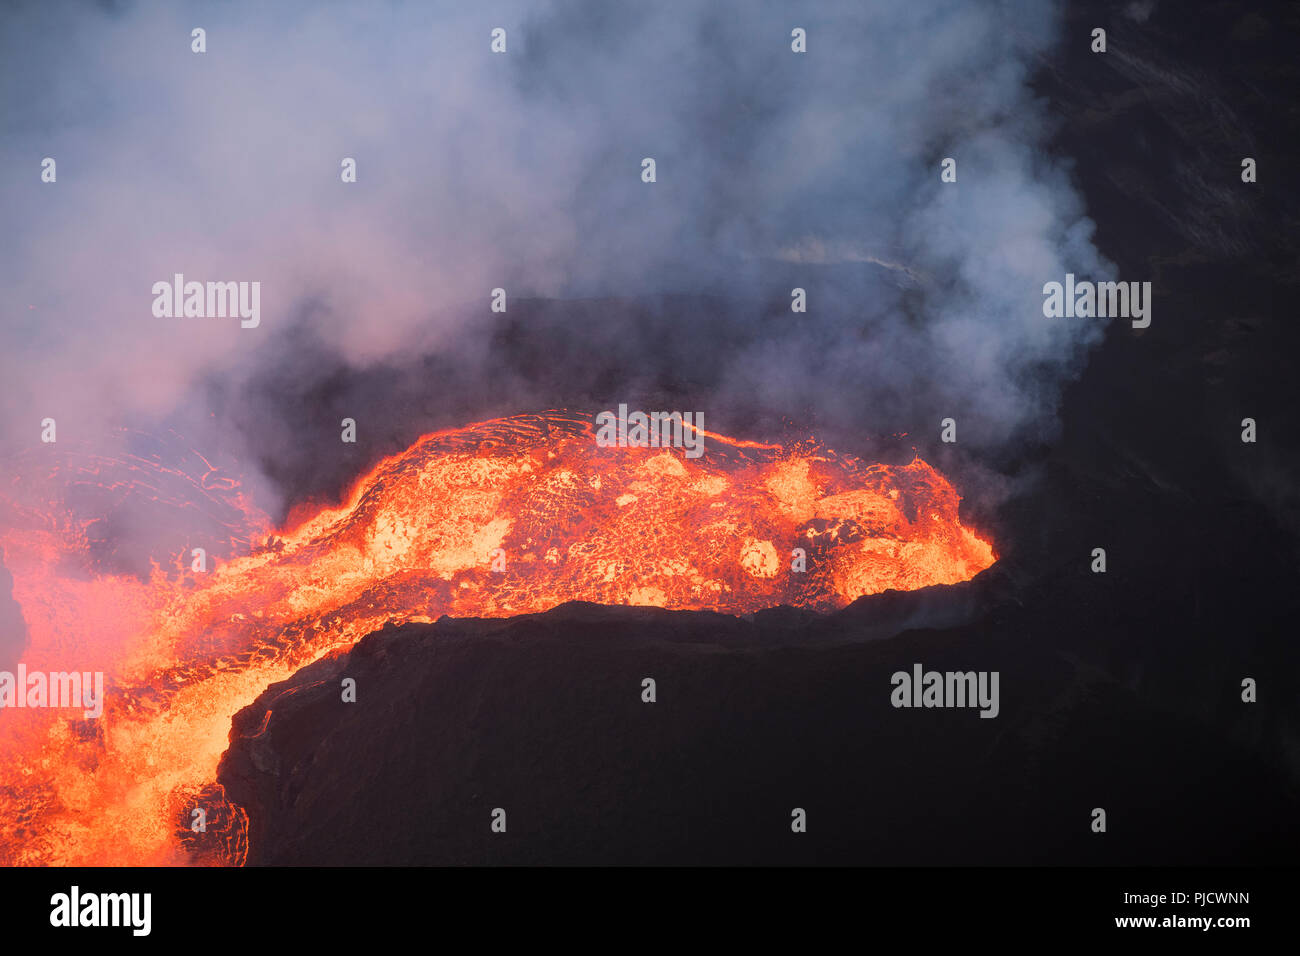 Aerial view of lava boiling out of Fissure 8 of the Kilauea Volcano east rift zone in Leilani Estates subdivision near the town of Pahoa, Hawaii - Stock Image